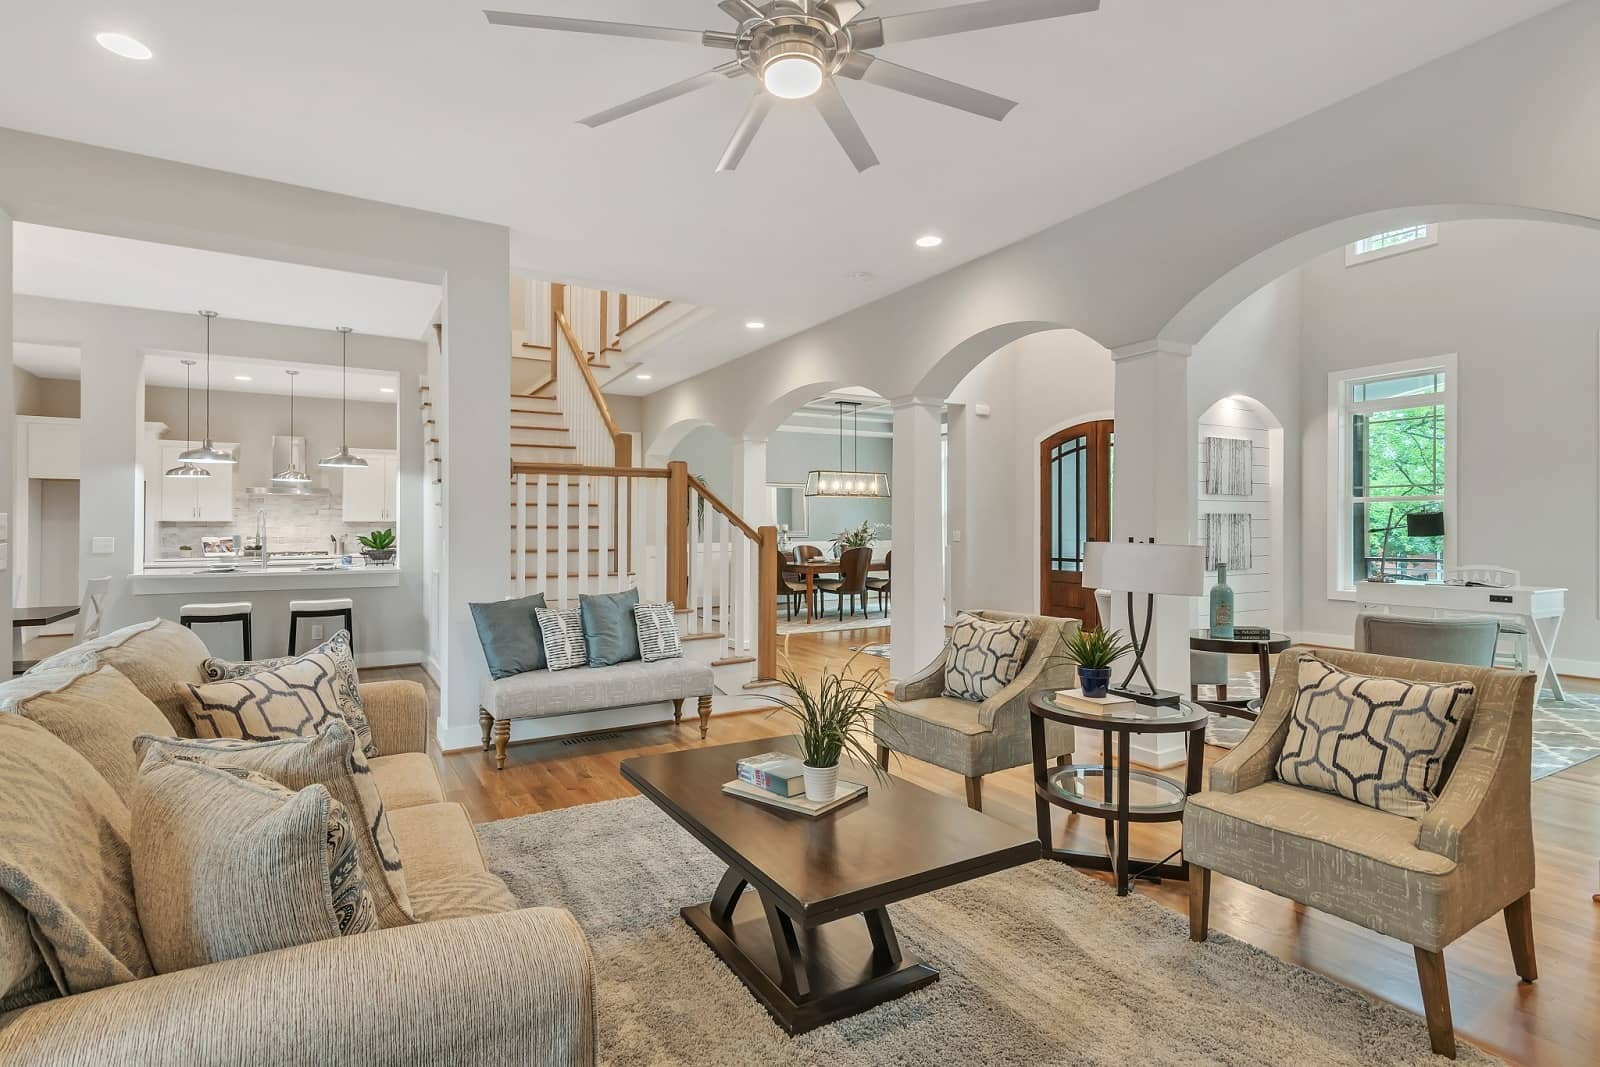 Real Estate Photography in Raleigh - NC - USA - Living Area View